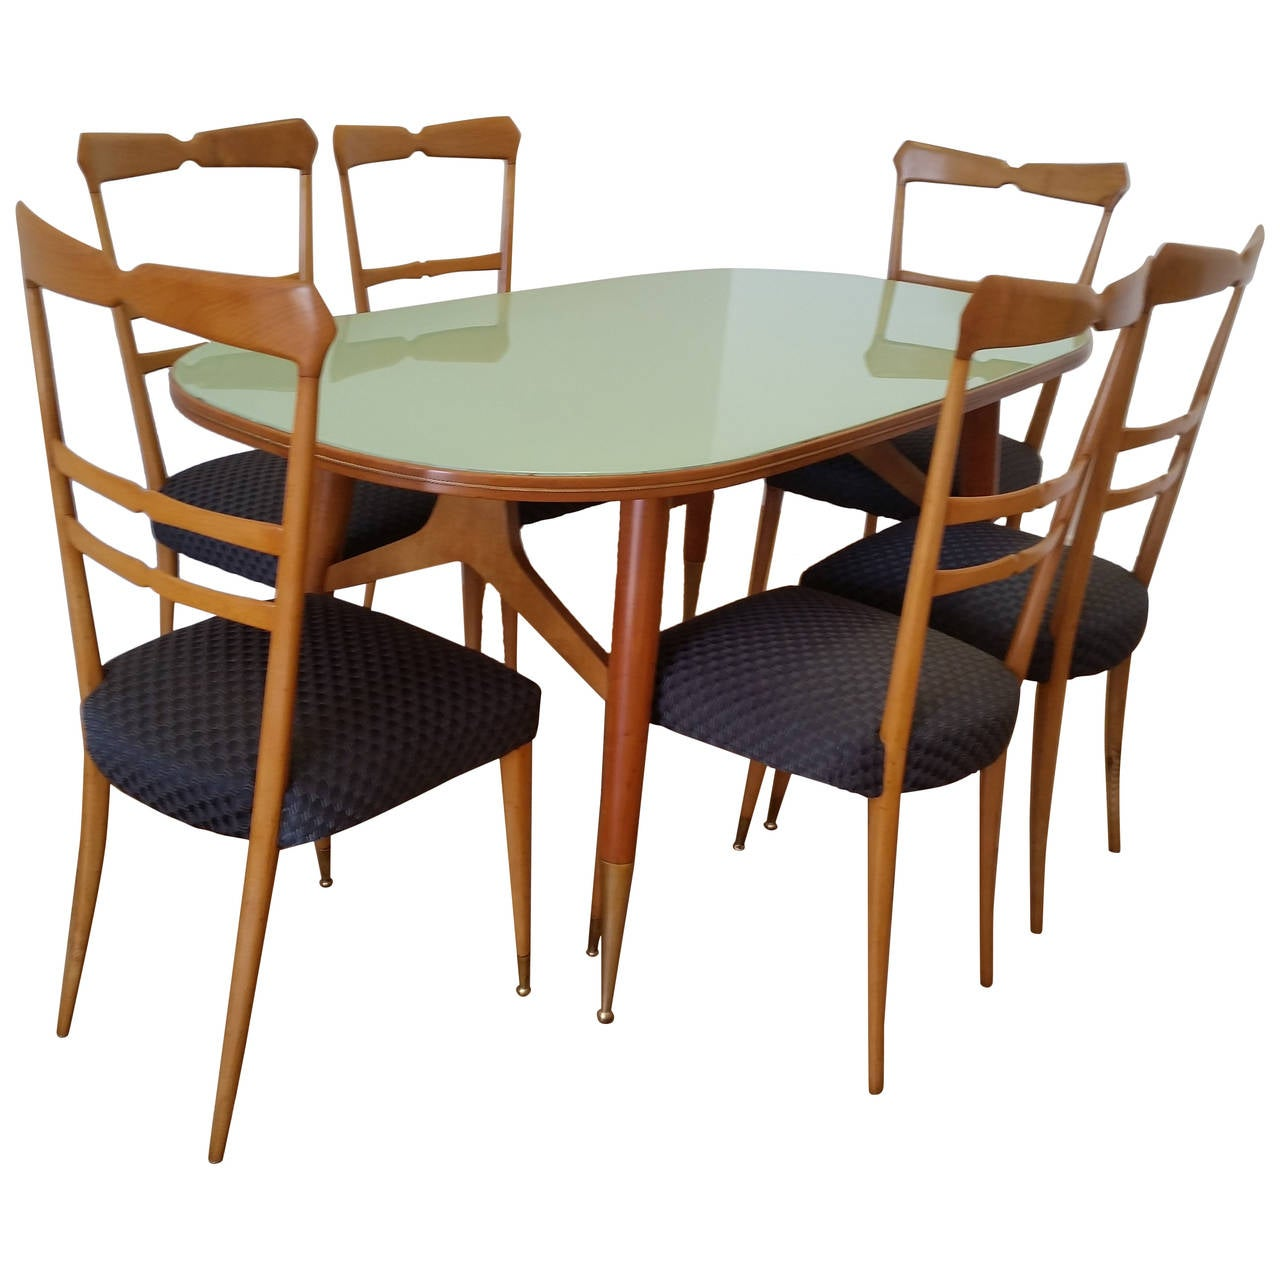 Cherrywood Dining Room Sets Ico And Luisa Parisi Dining Table And Six Chairs At 1stdibs